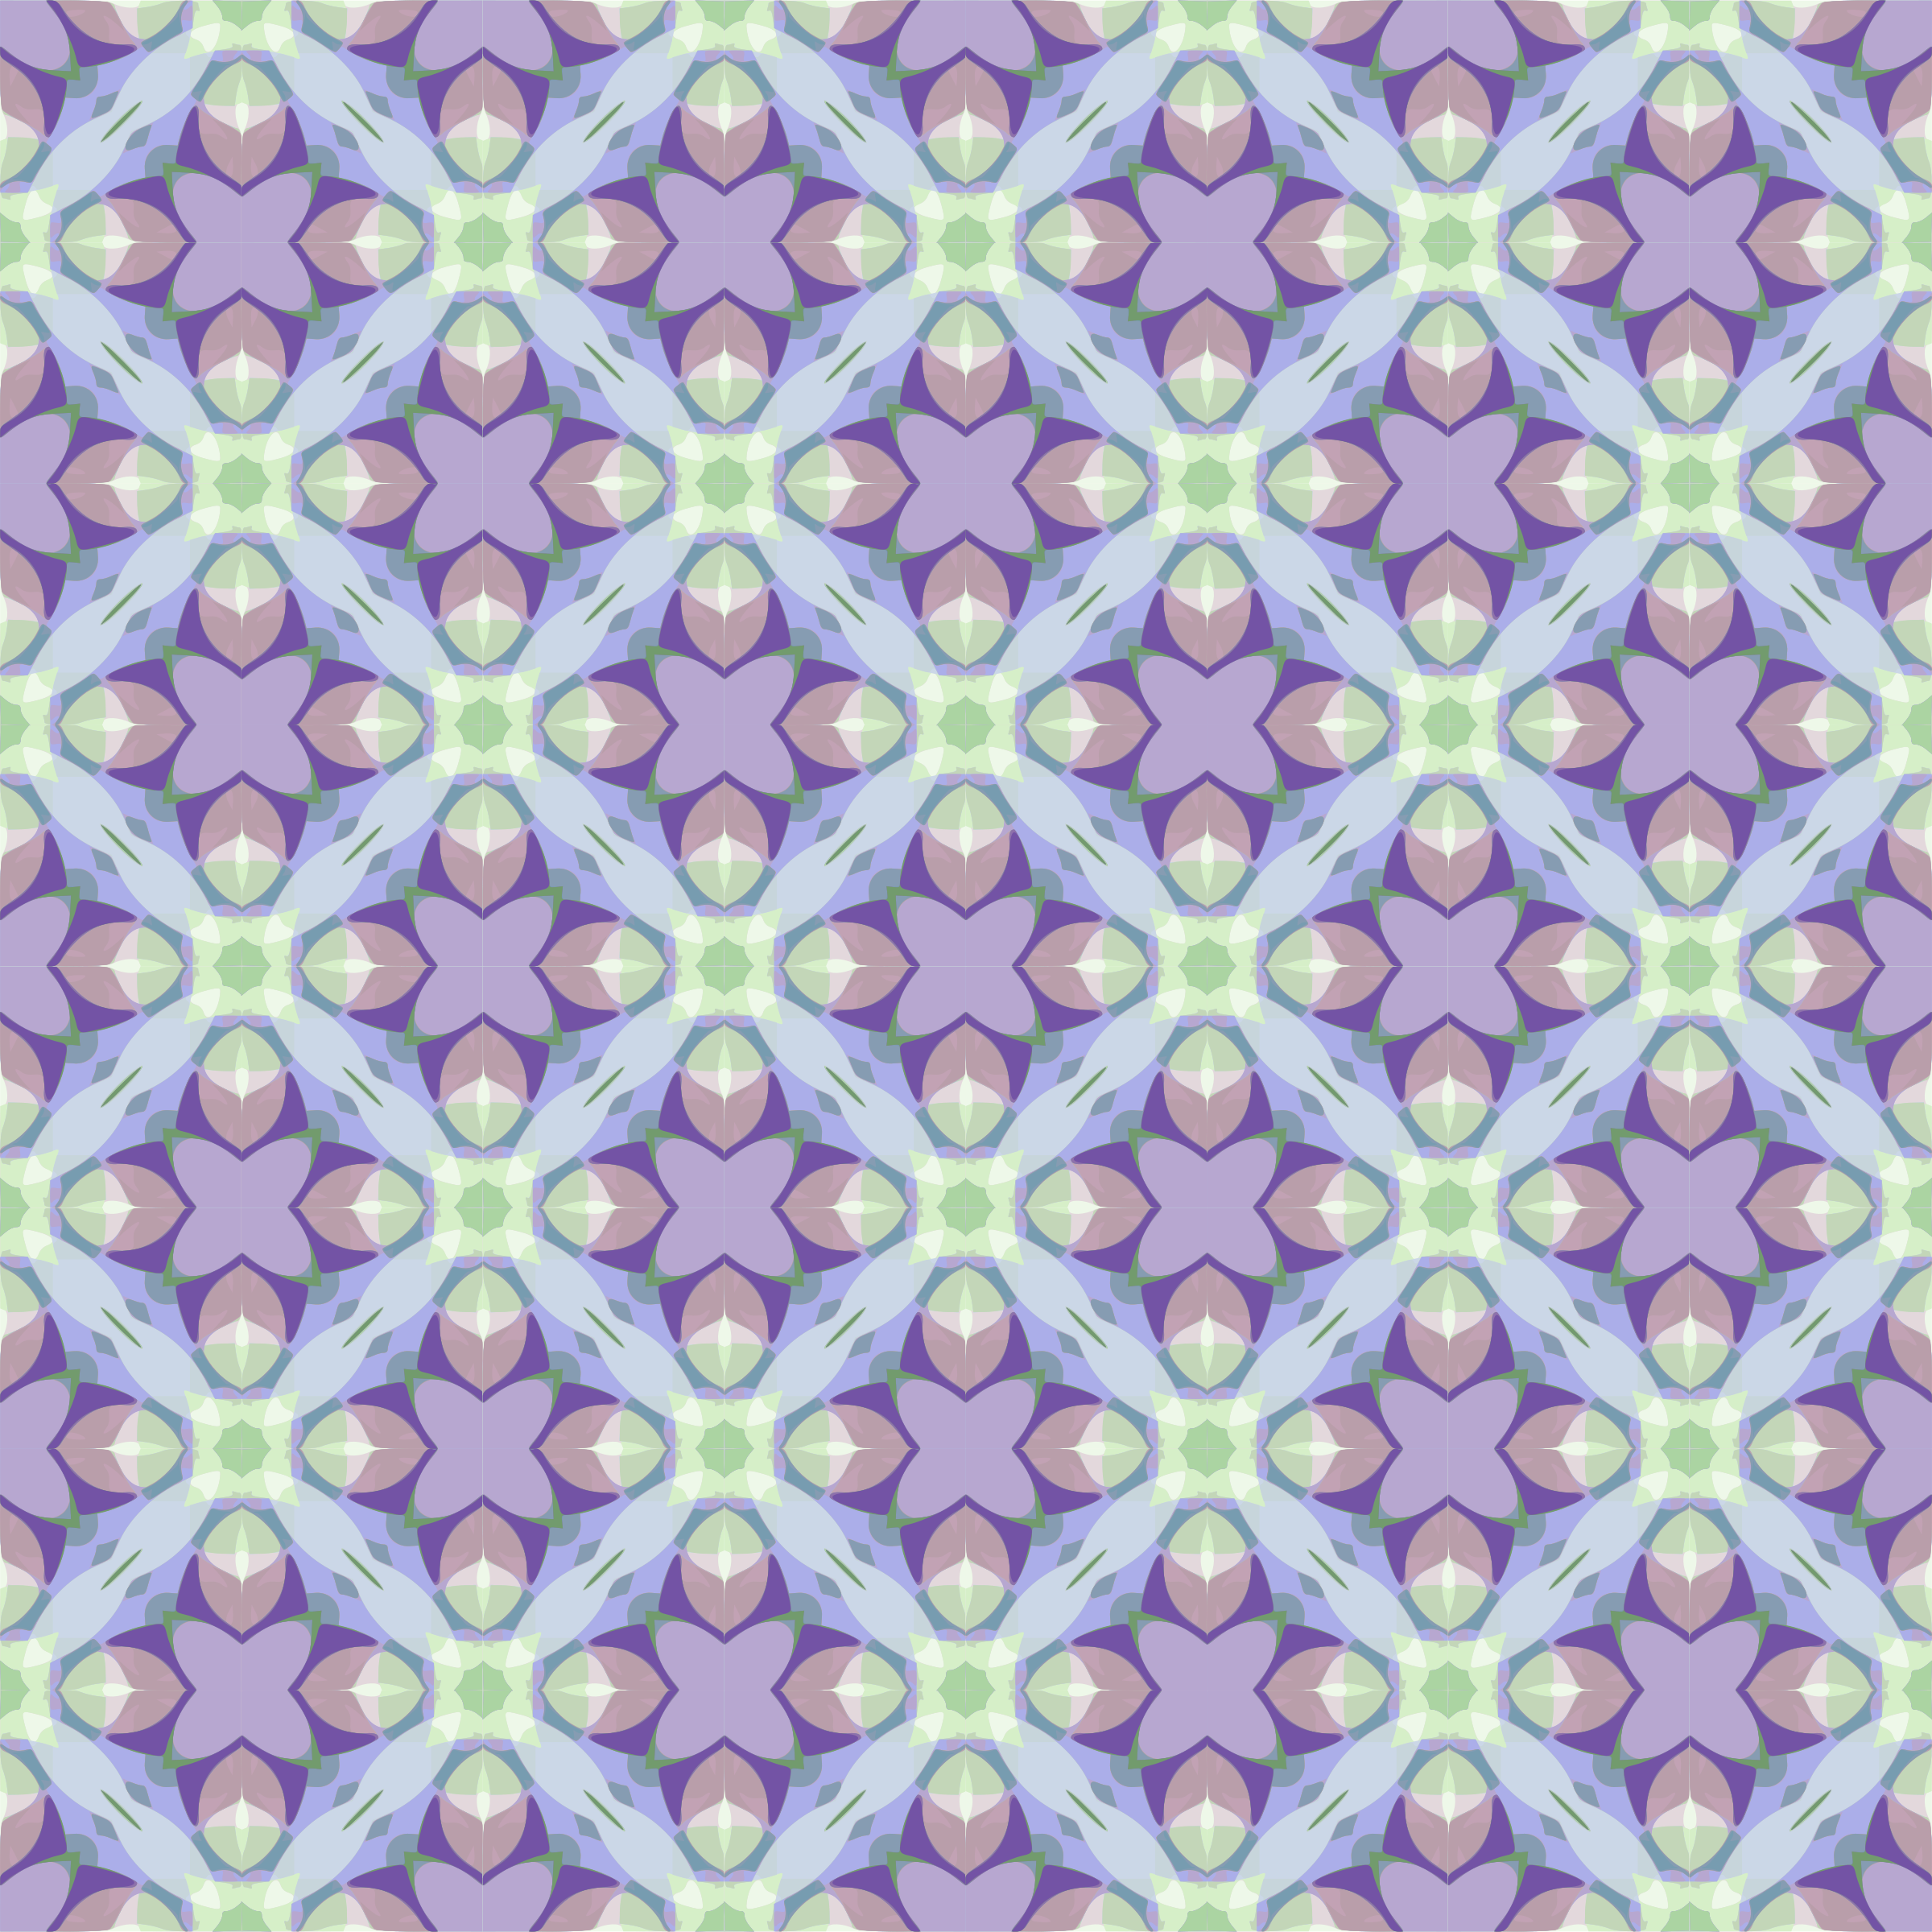 Background pattern 143 (colour 3) by Firkin